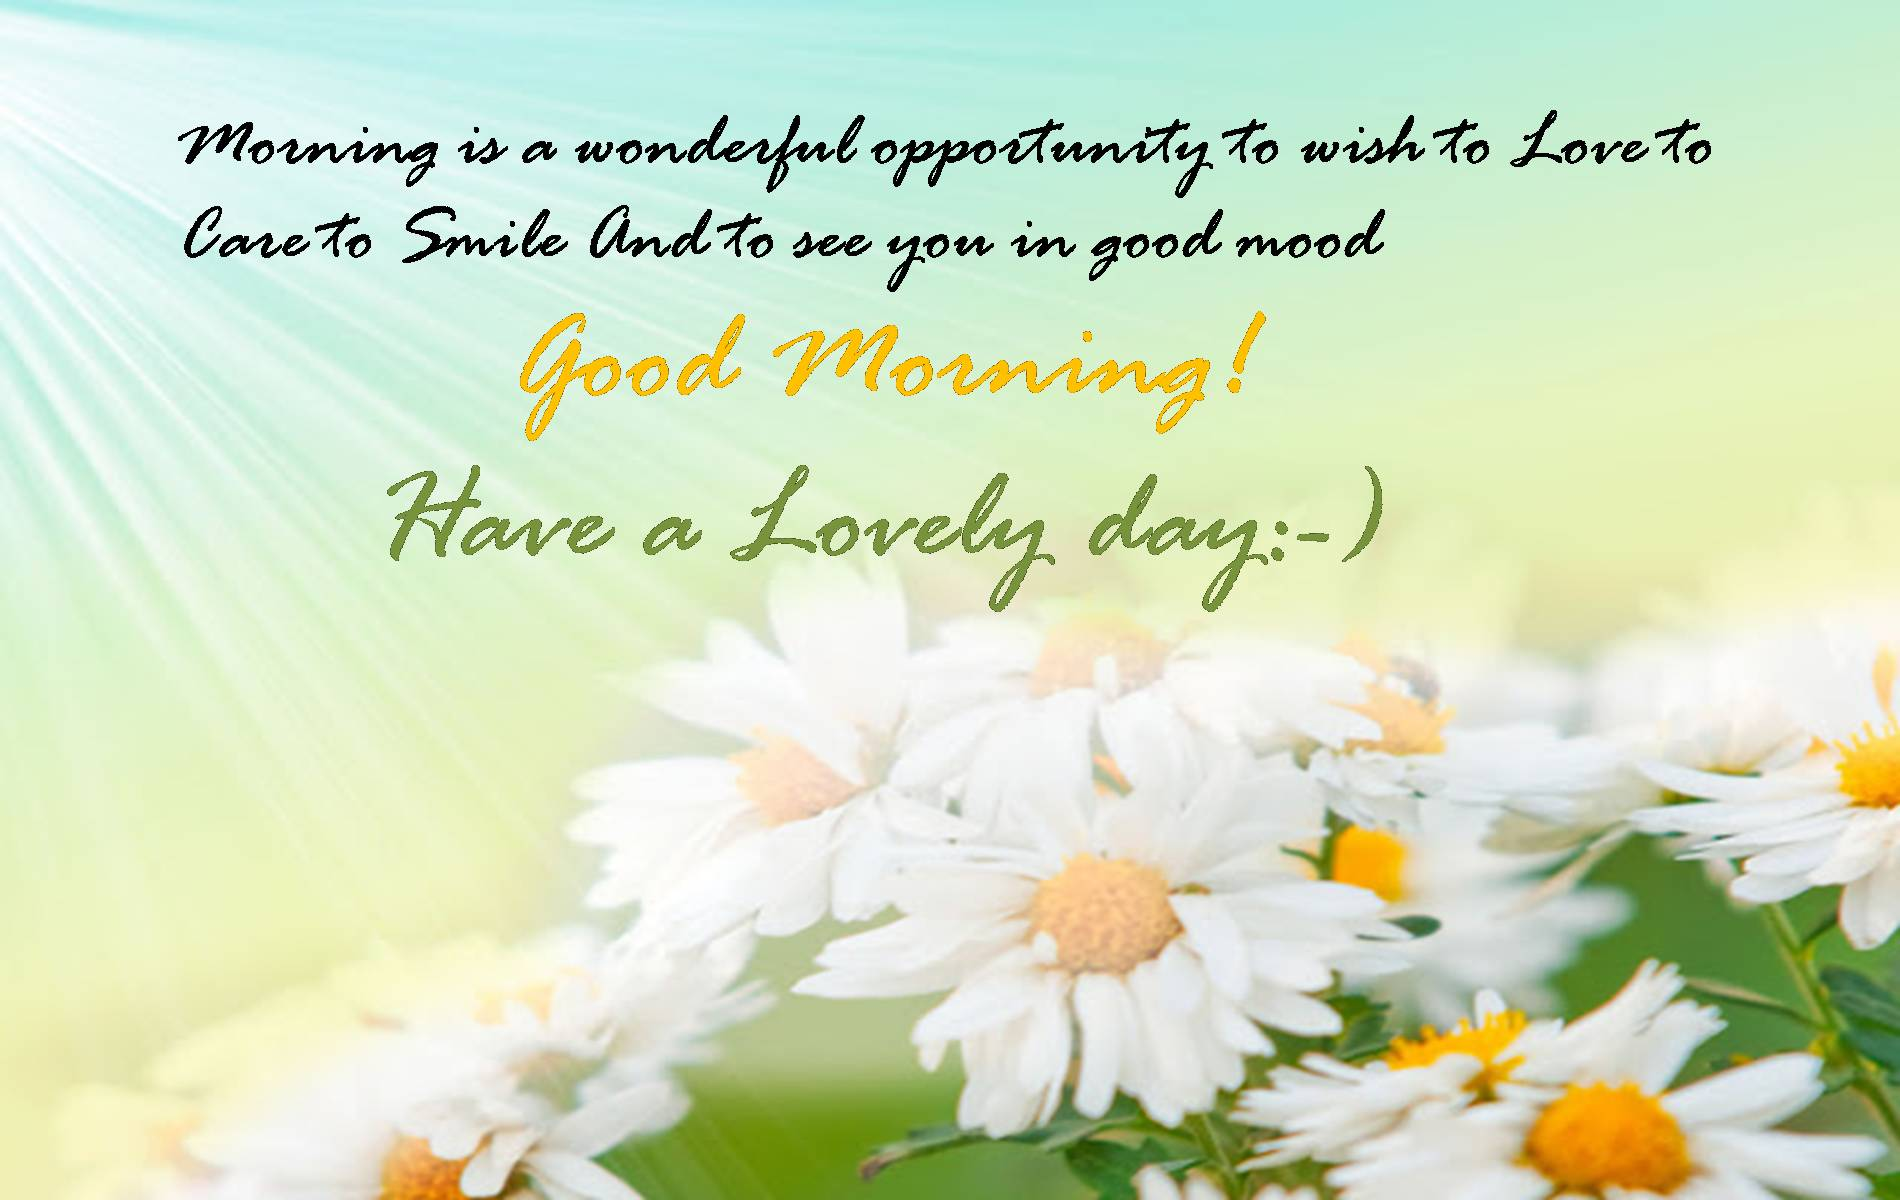 Wallpaper download good morning - Hug Day Sms Hd Wallpapers For Friends Home Concepts Ideas